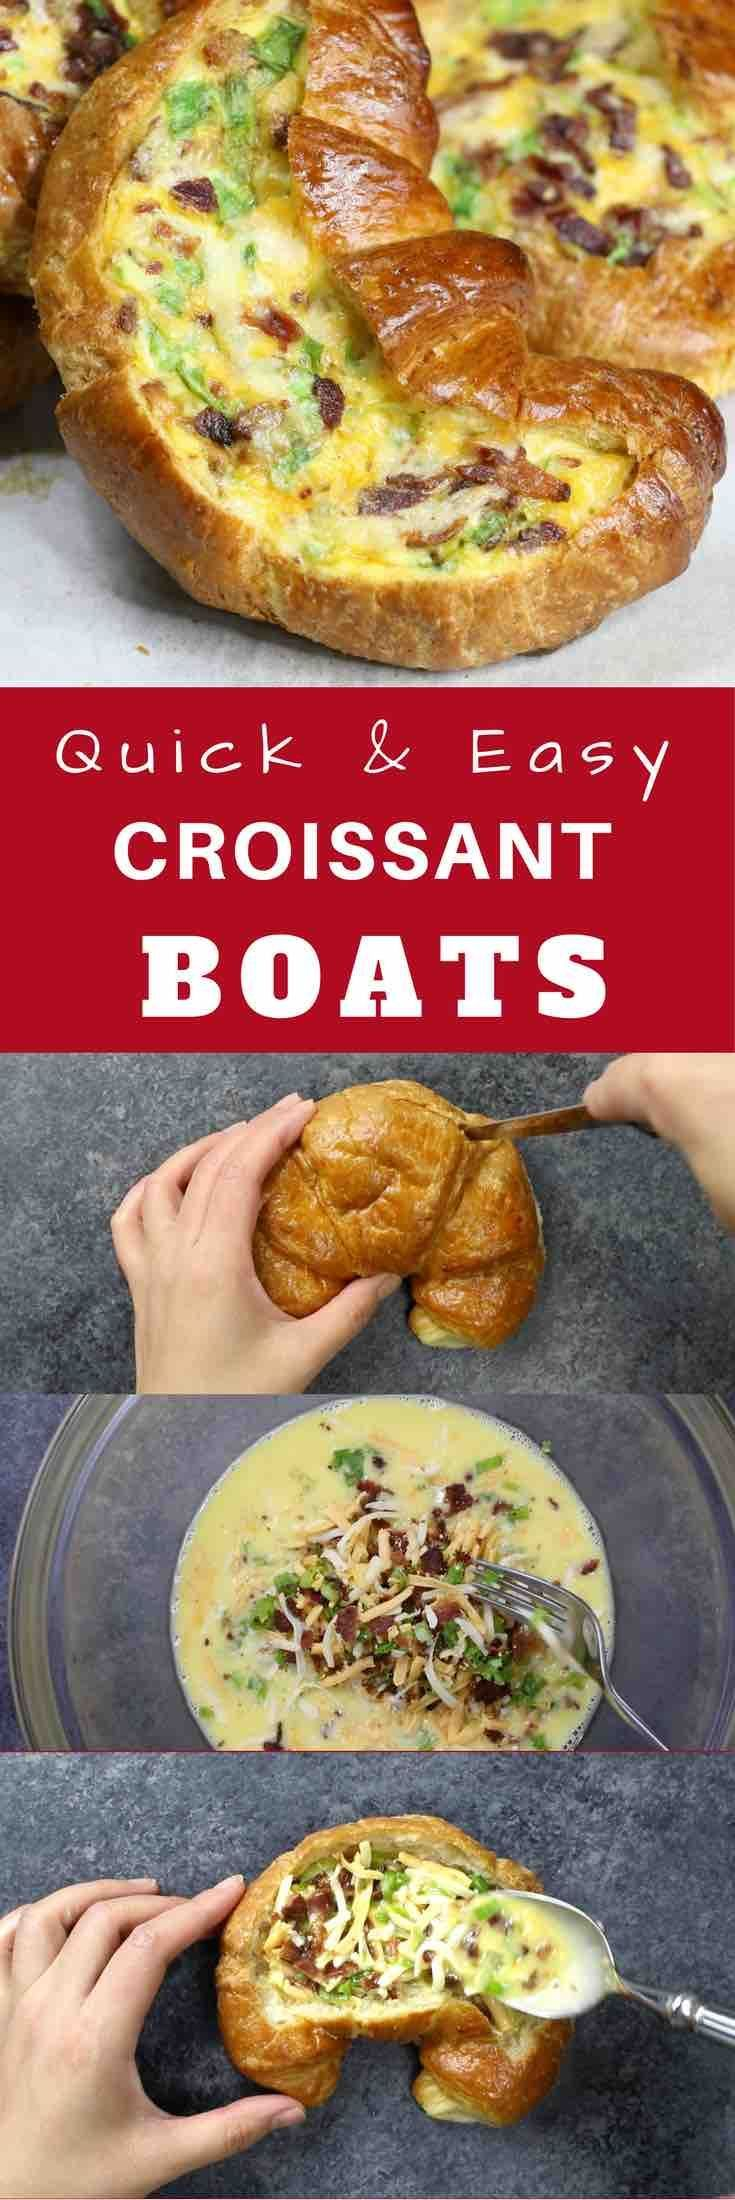 Cheesy Bacon Egg Boats – crispy bacon, fluffy egg and melted cheddar cheese baked in croissant breakfast boats! A quick and easy recipe that's ready in 30 minutes and feeds a crowd! Perfect for breakfast and brunch. So delicious! Video recipe. | Tipbuzz.com